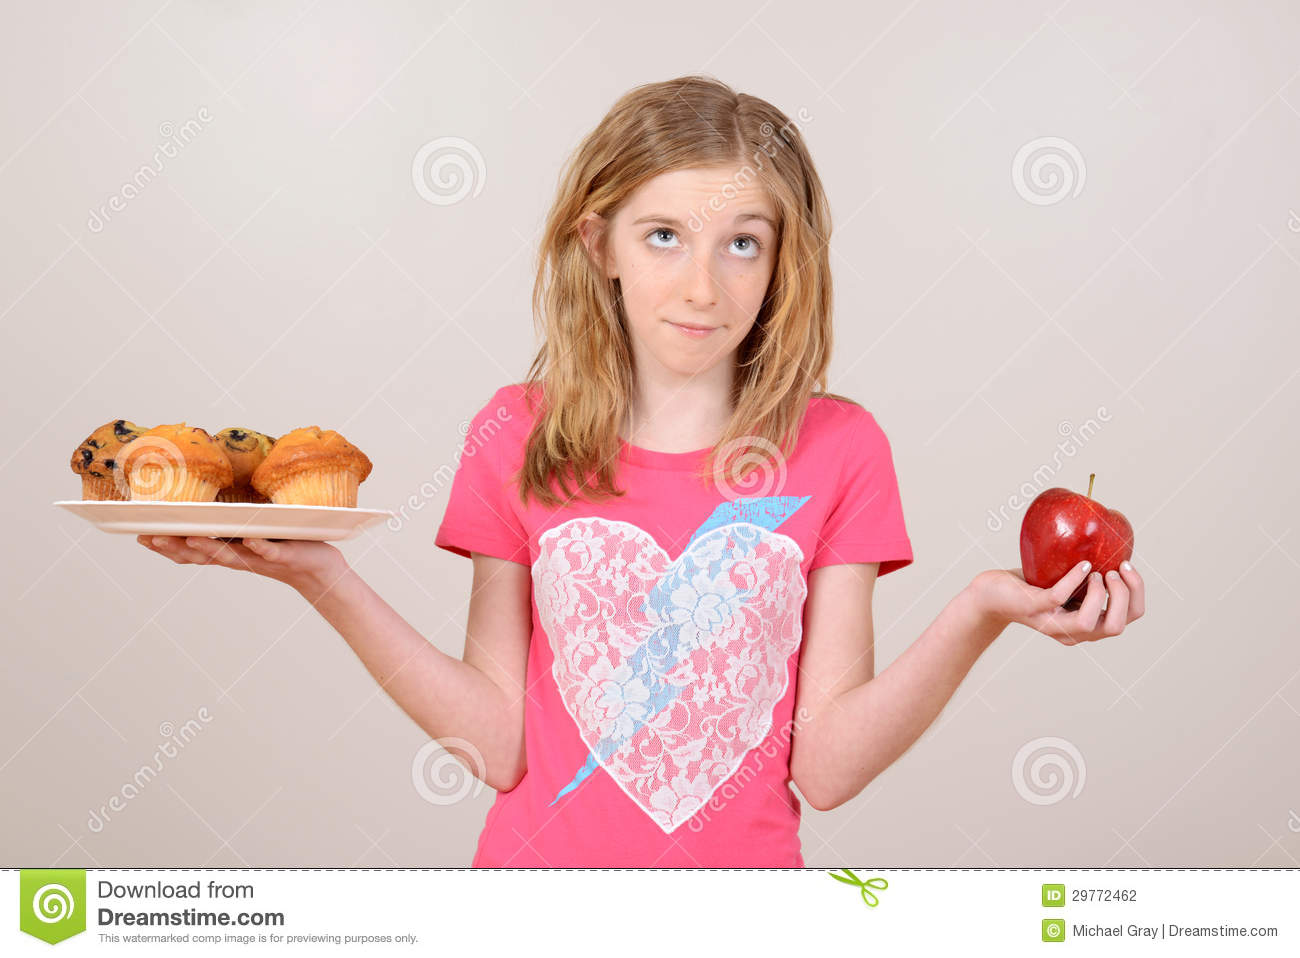 Download Female Child Healthy Eating Concept Stock Photo - Image of cupcake, choice: 29772462